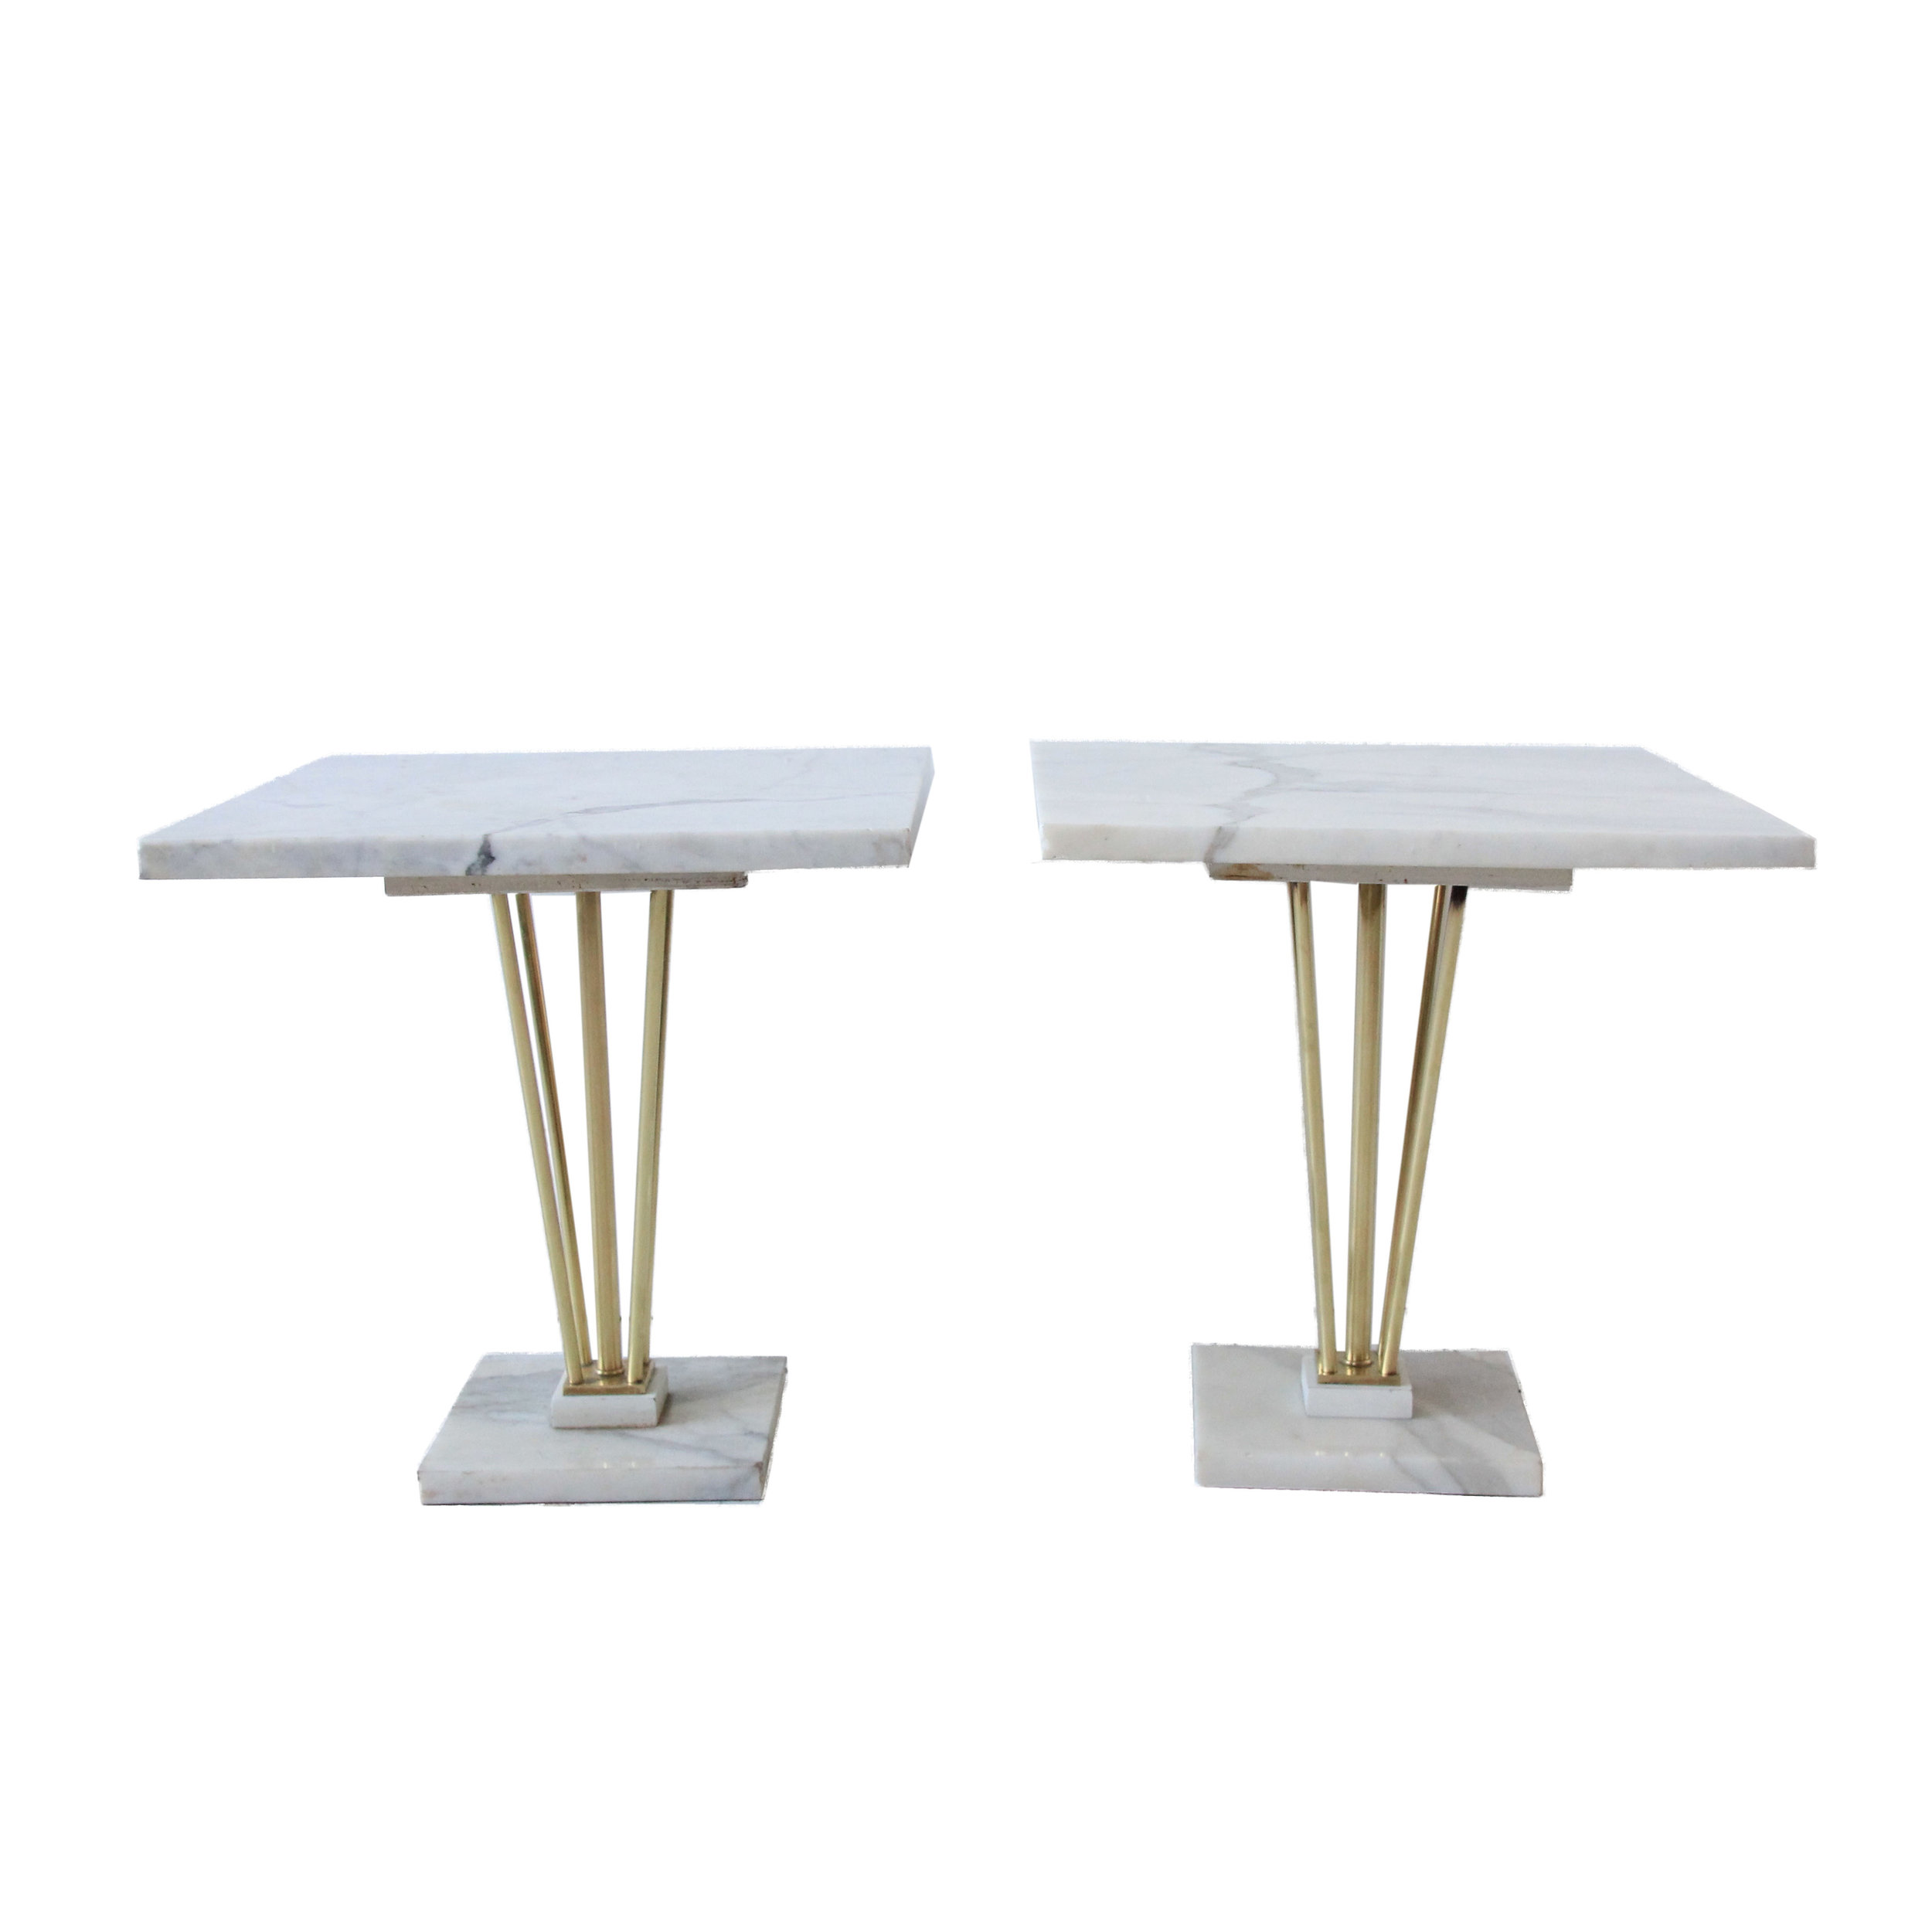 vintage marble and brass side tables.jpg